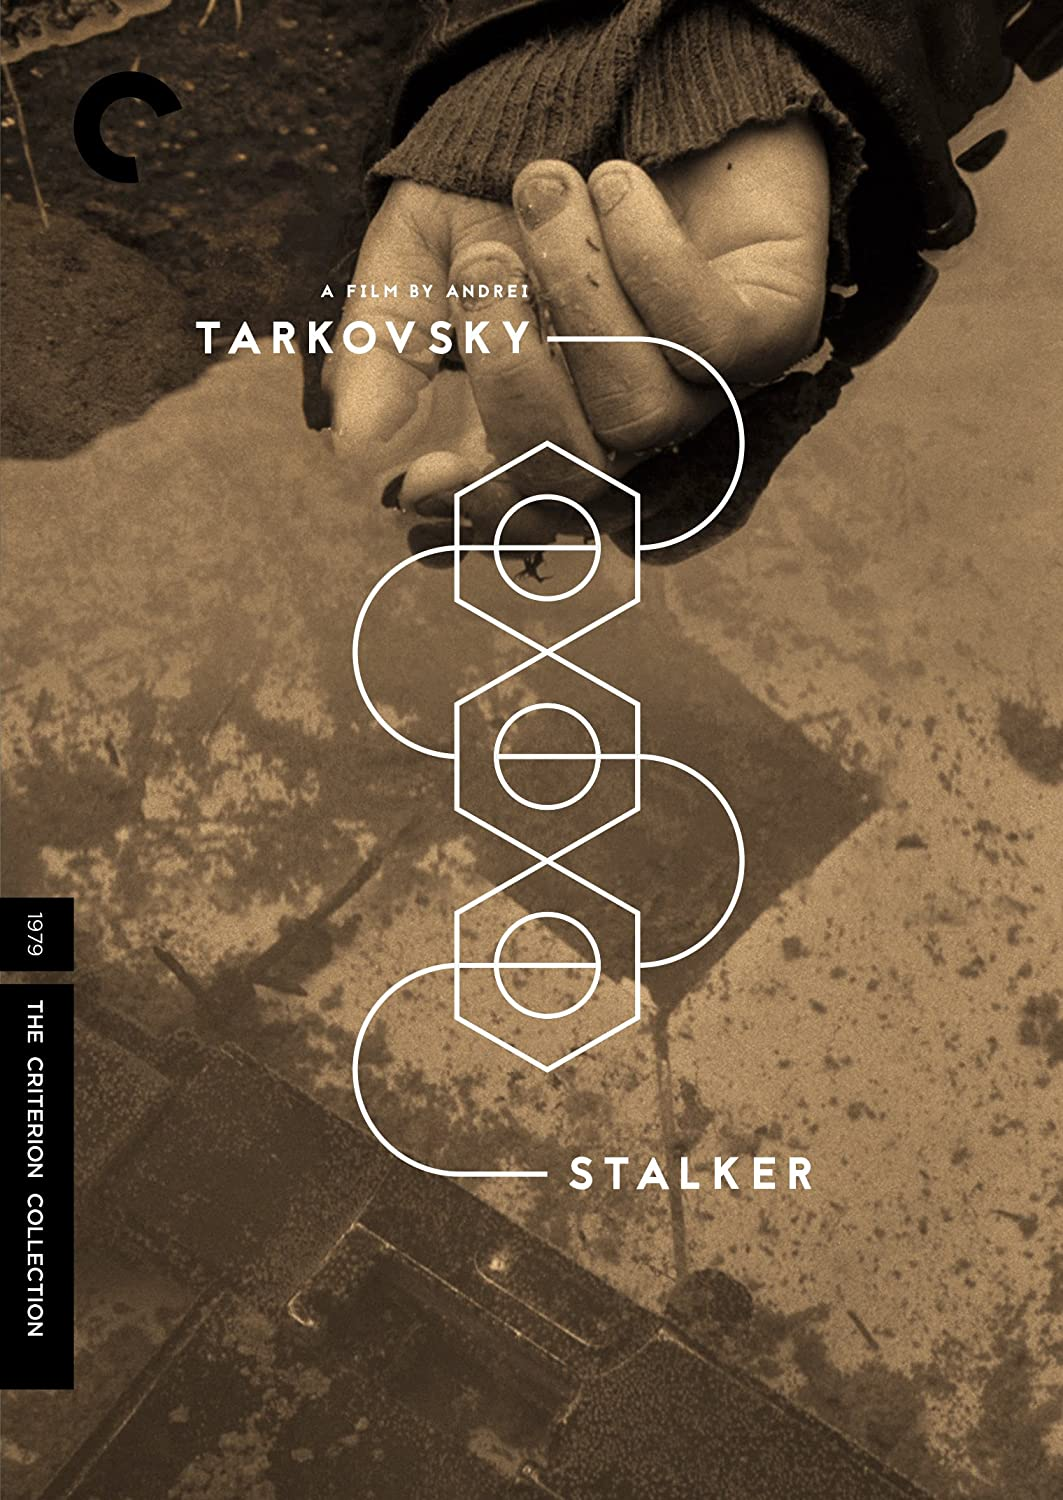 The network posted Tarkovsky films for free viewing 53